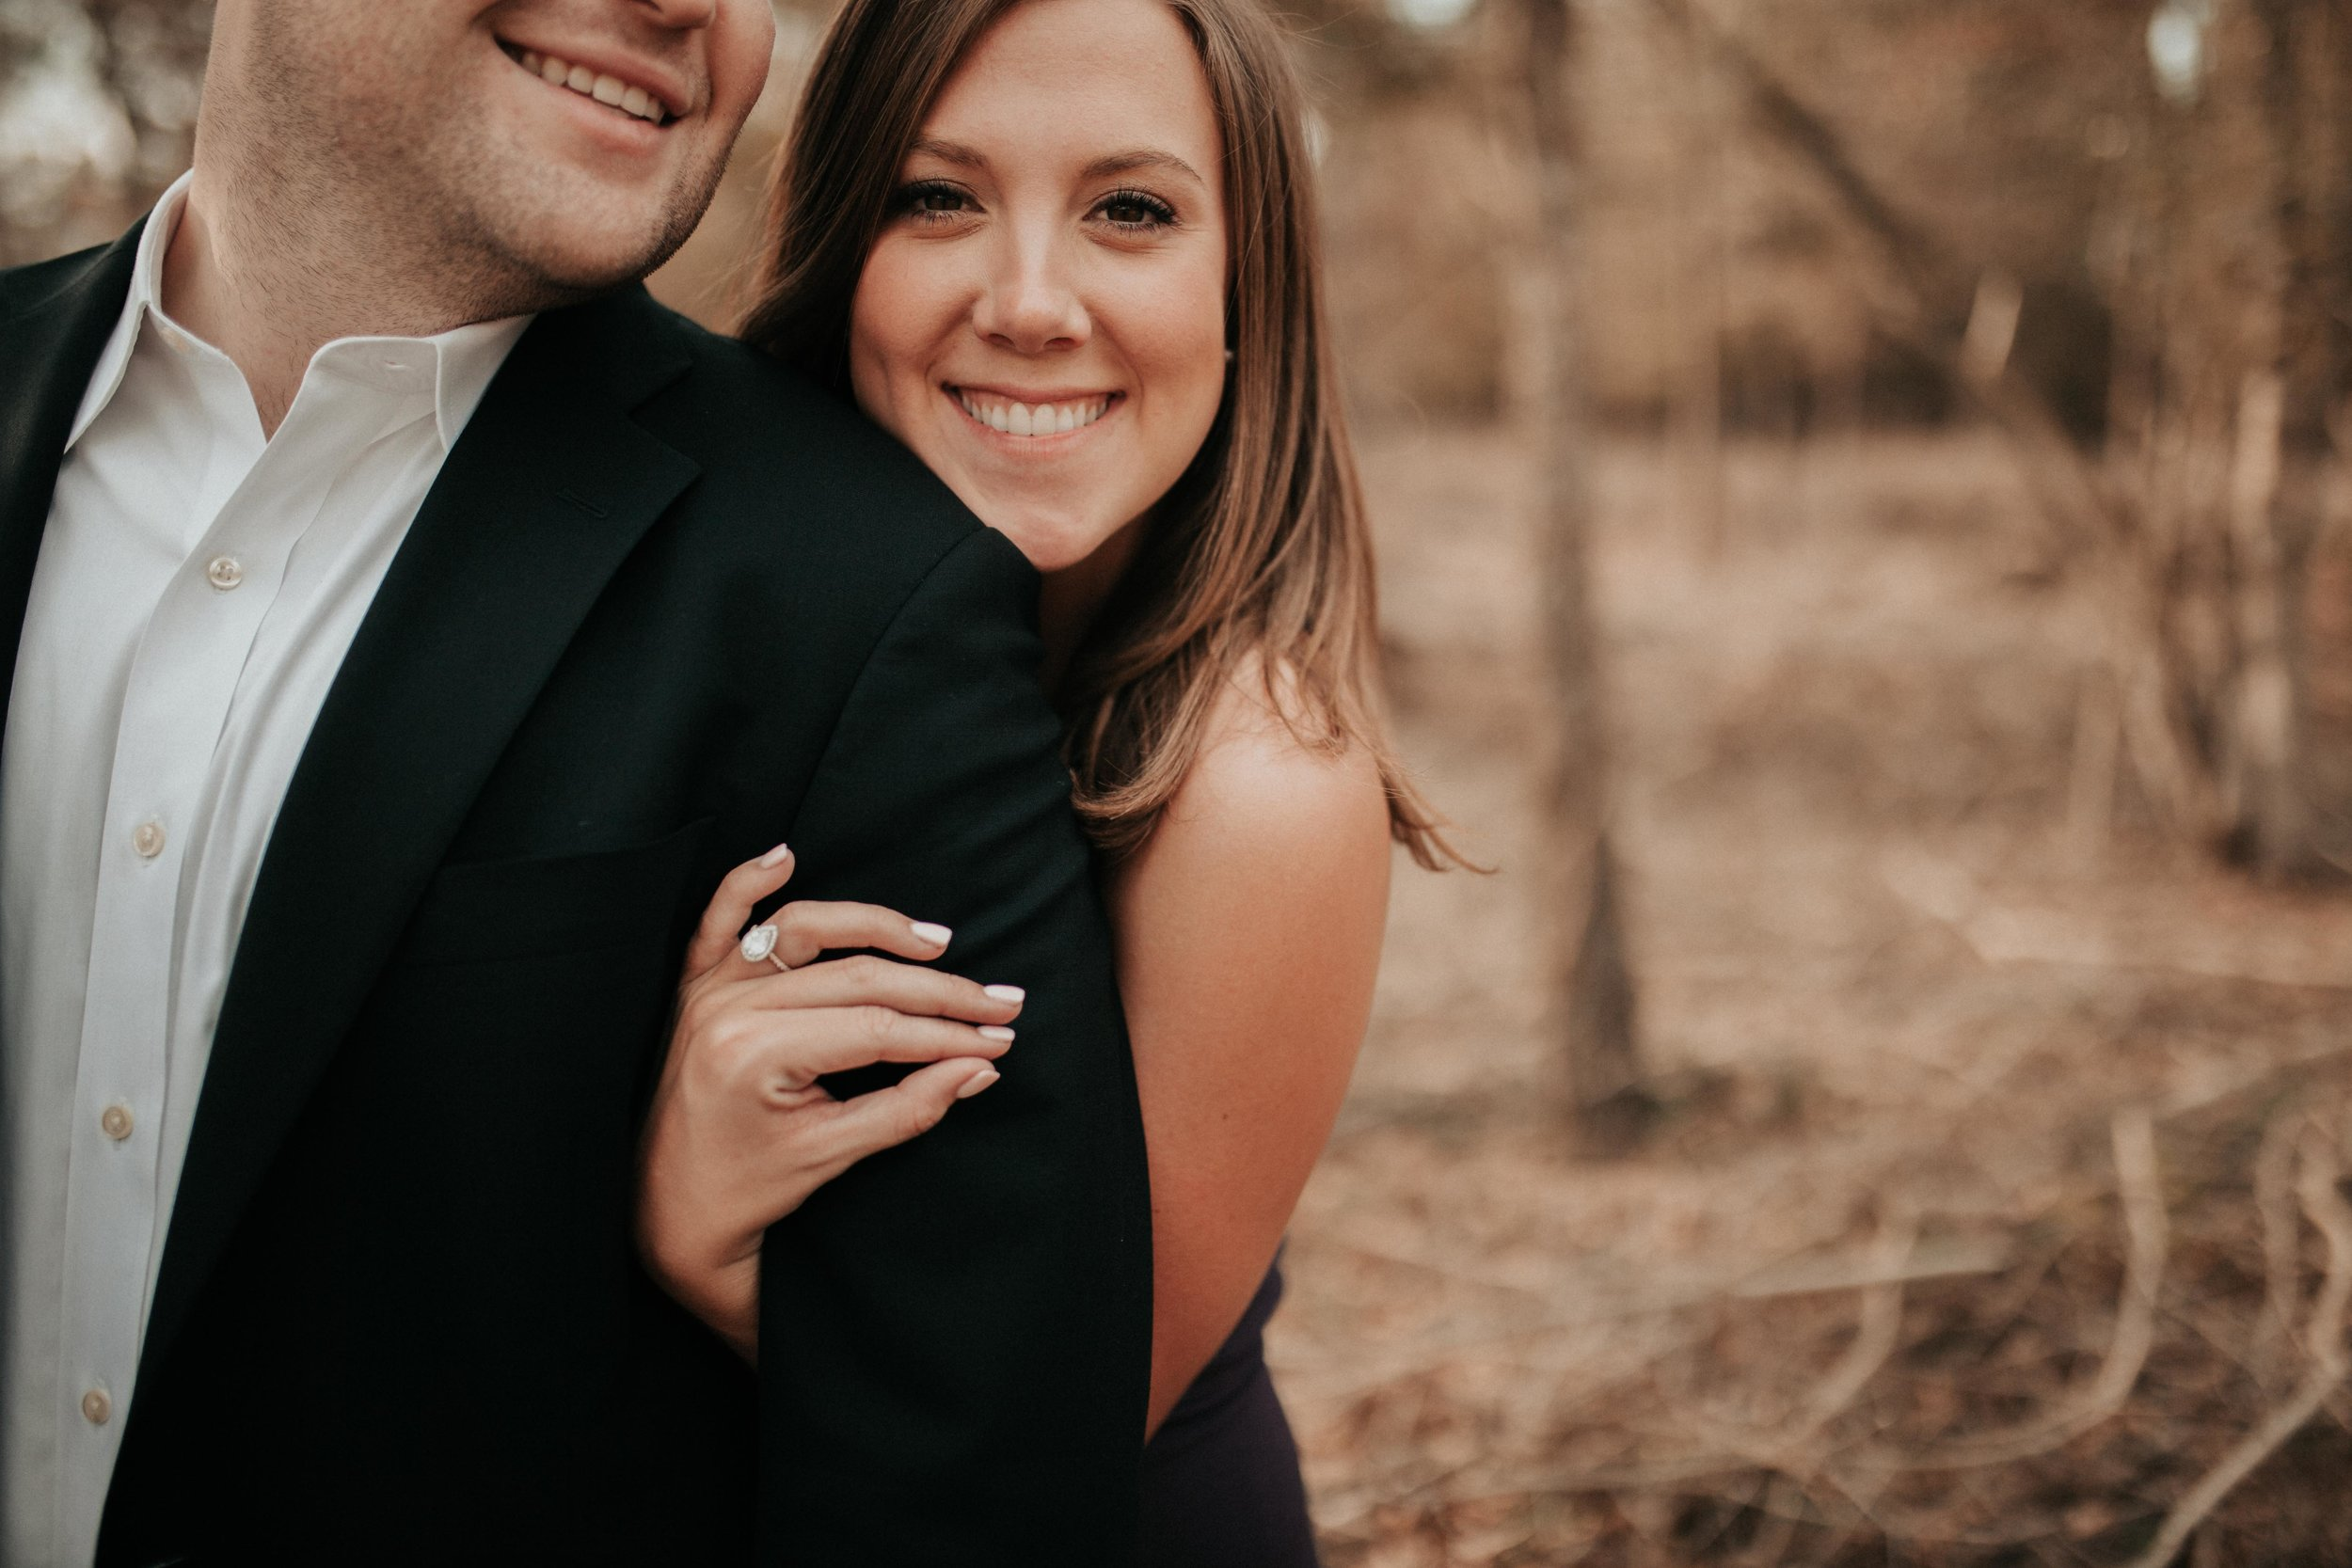 Memorial Park Engagement Session Houston Texas - Madeleine Frost-1195.jpg